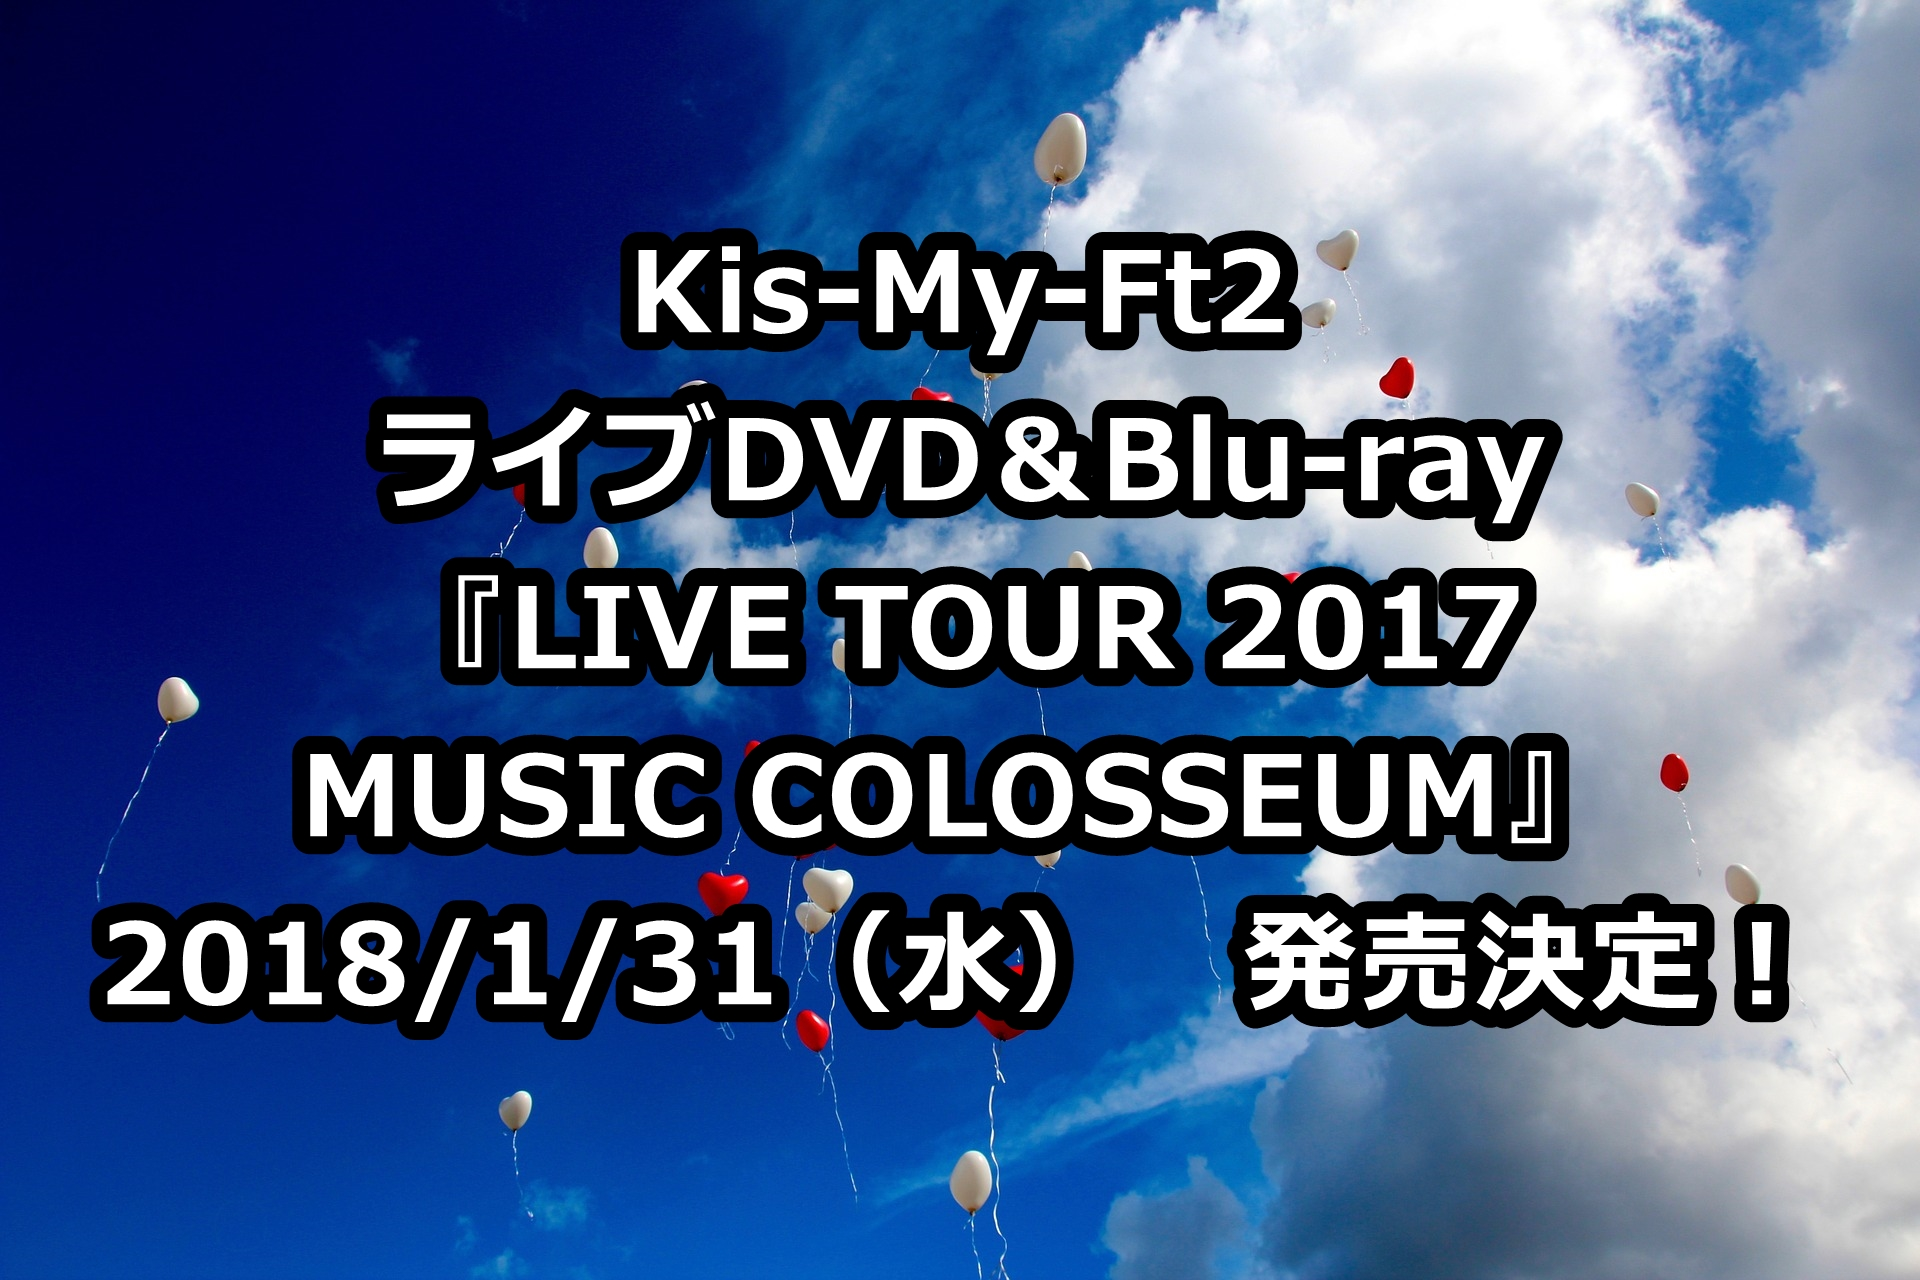 Kis-My-Ft2(キスマイ)ライブDVD予約・特典案内!最新「2017 MUSIC COLOSSEUM」収録曲、最安値など徹底解説